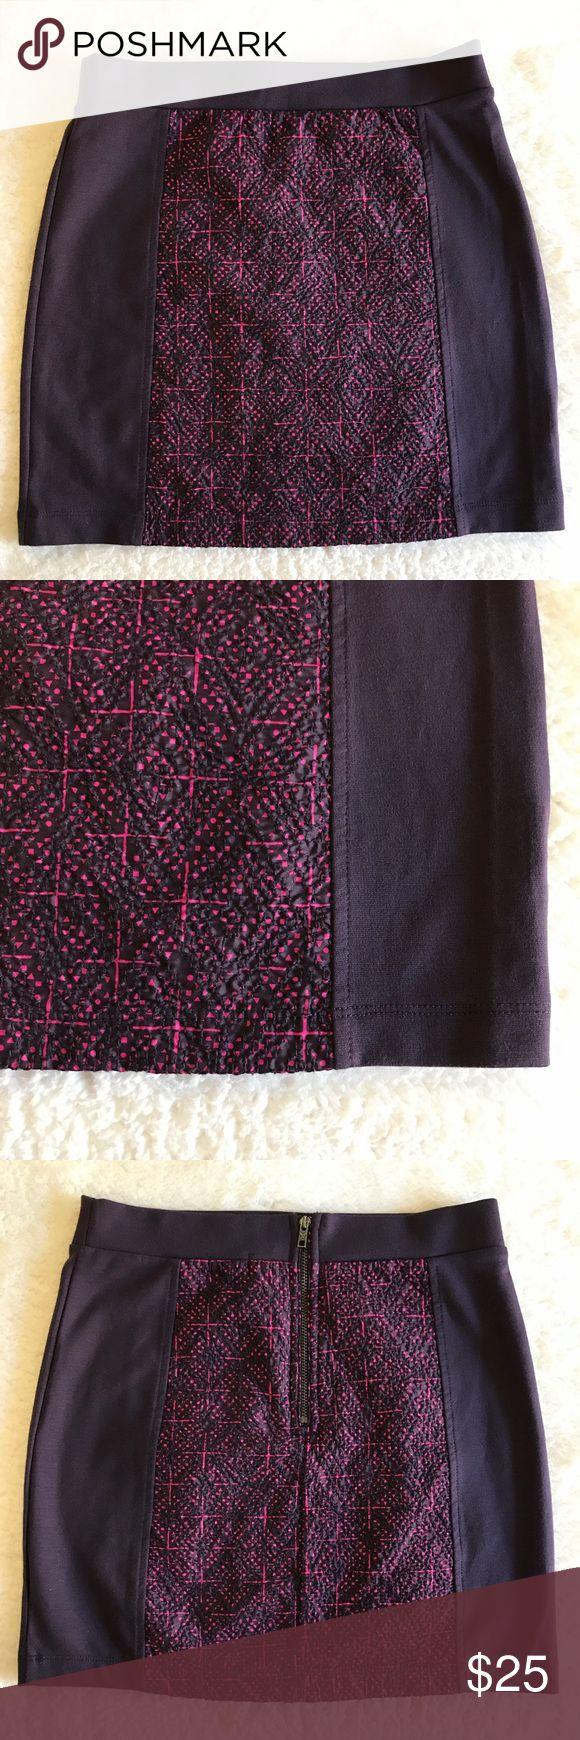 American Eagle Outfitters Body Con Mini Skirt Perfect Condition America Eagle Body Con Mini Skirt in Deep Purple With a pink & purple Macrame inlay. American Eagle Outfitters Skirts Mini